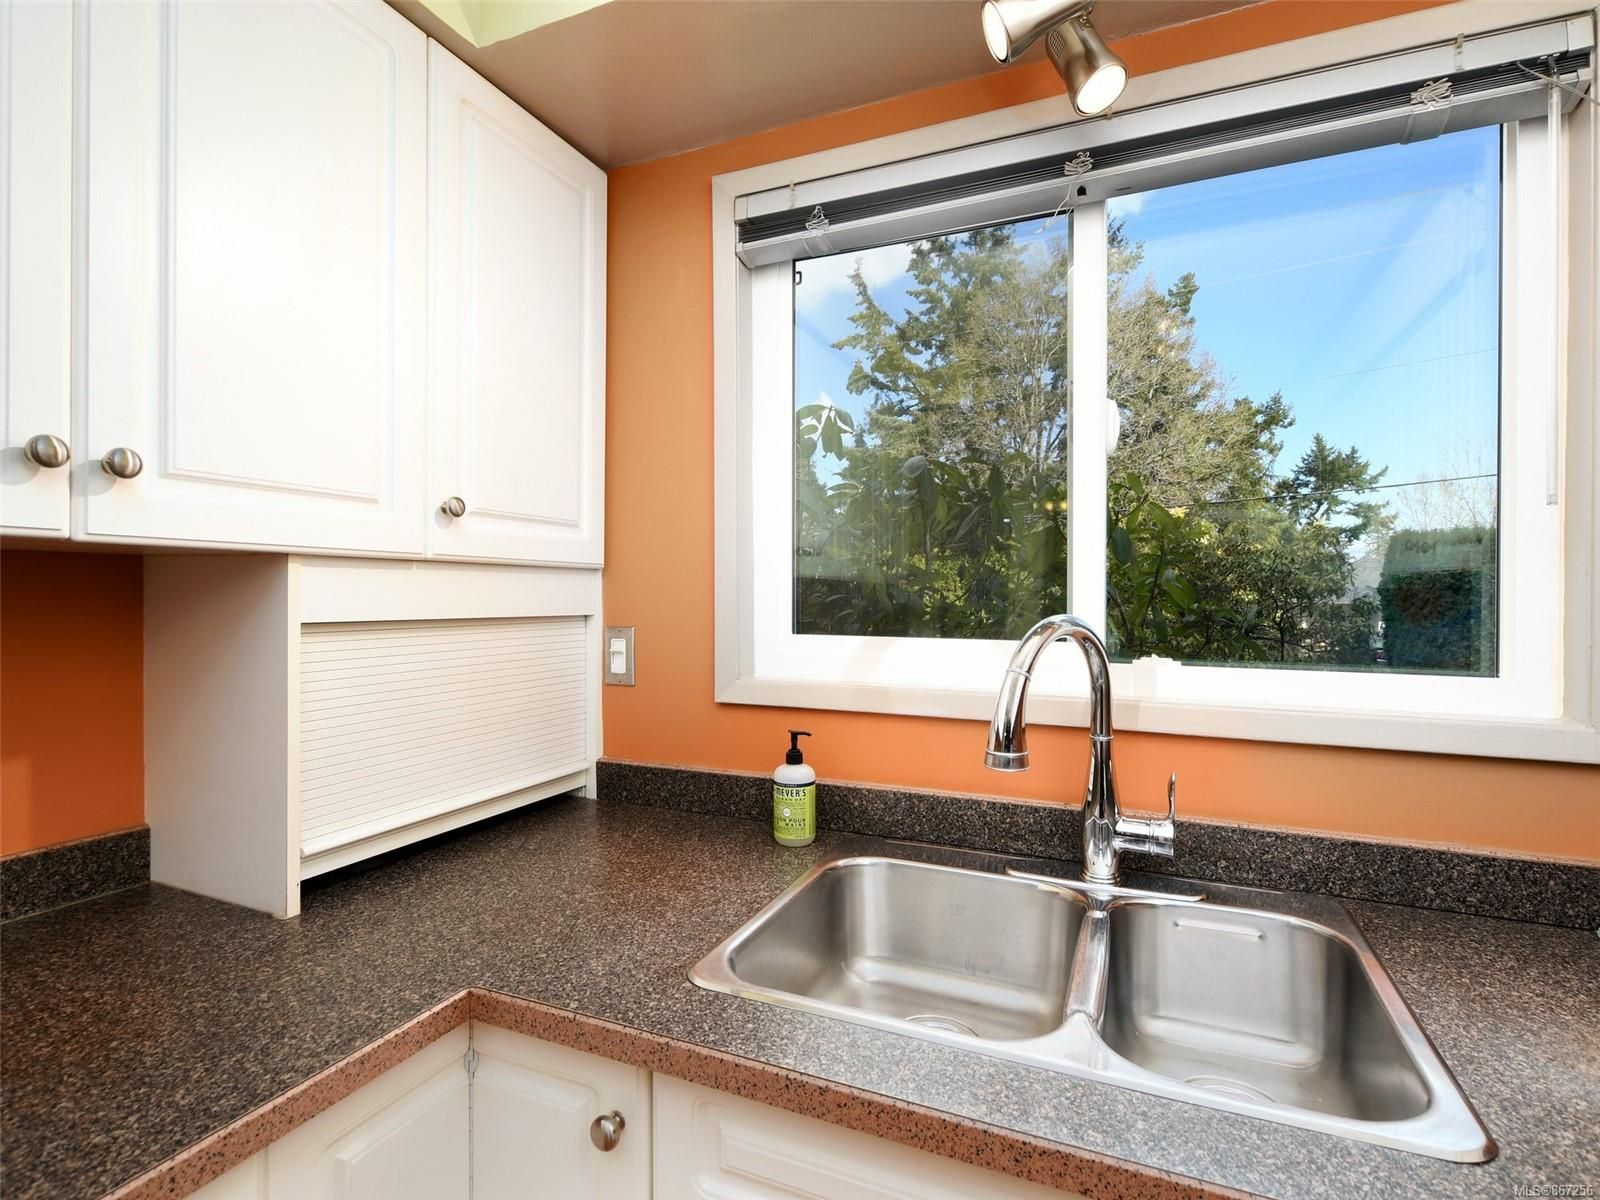 Photo 9: Photos: 5 869 Swan St in : SE Swan Lake Row/Townhouse for sale (Saanich East)  : MLS®# 867256